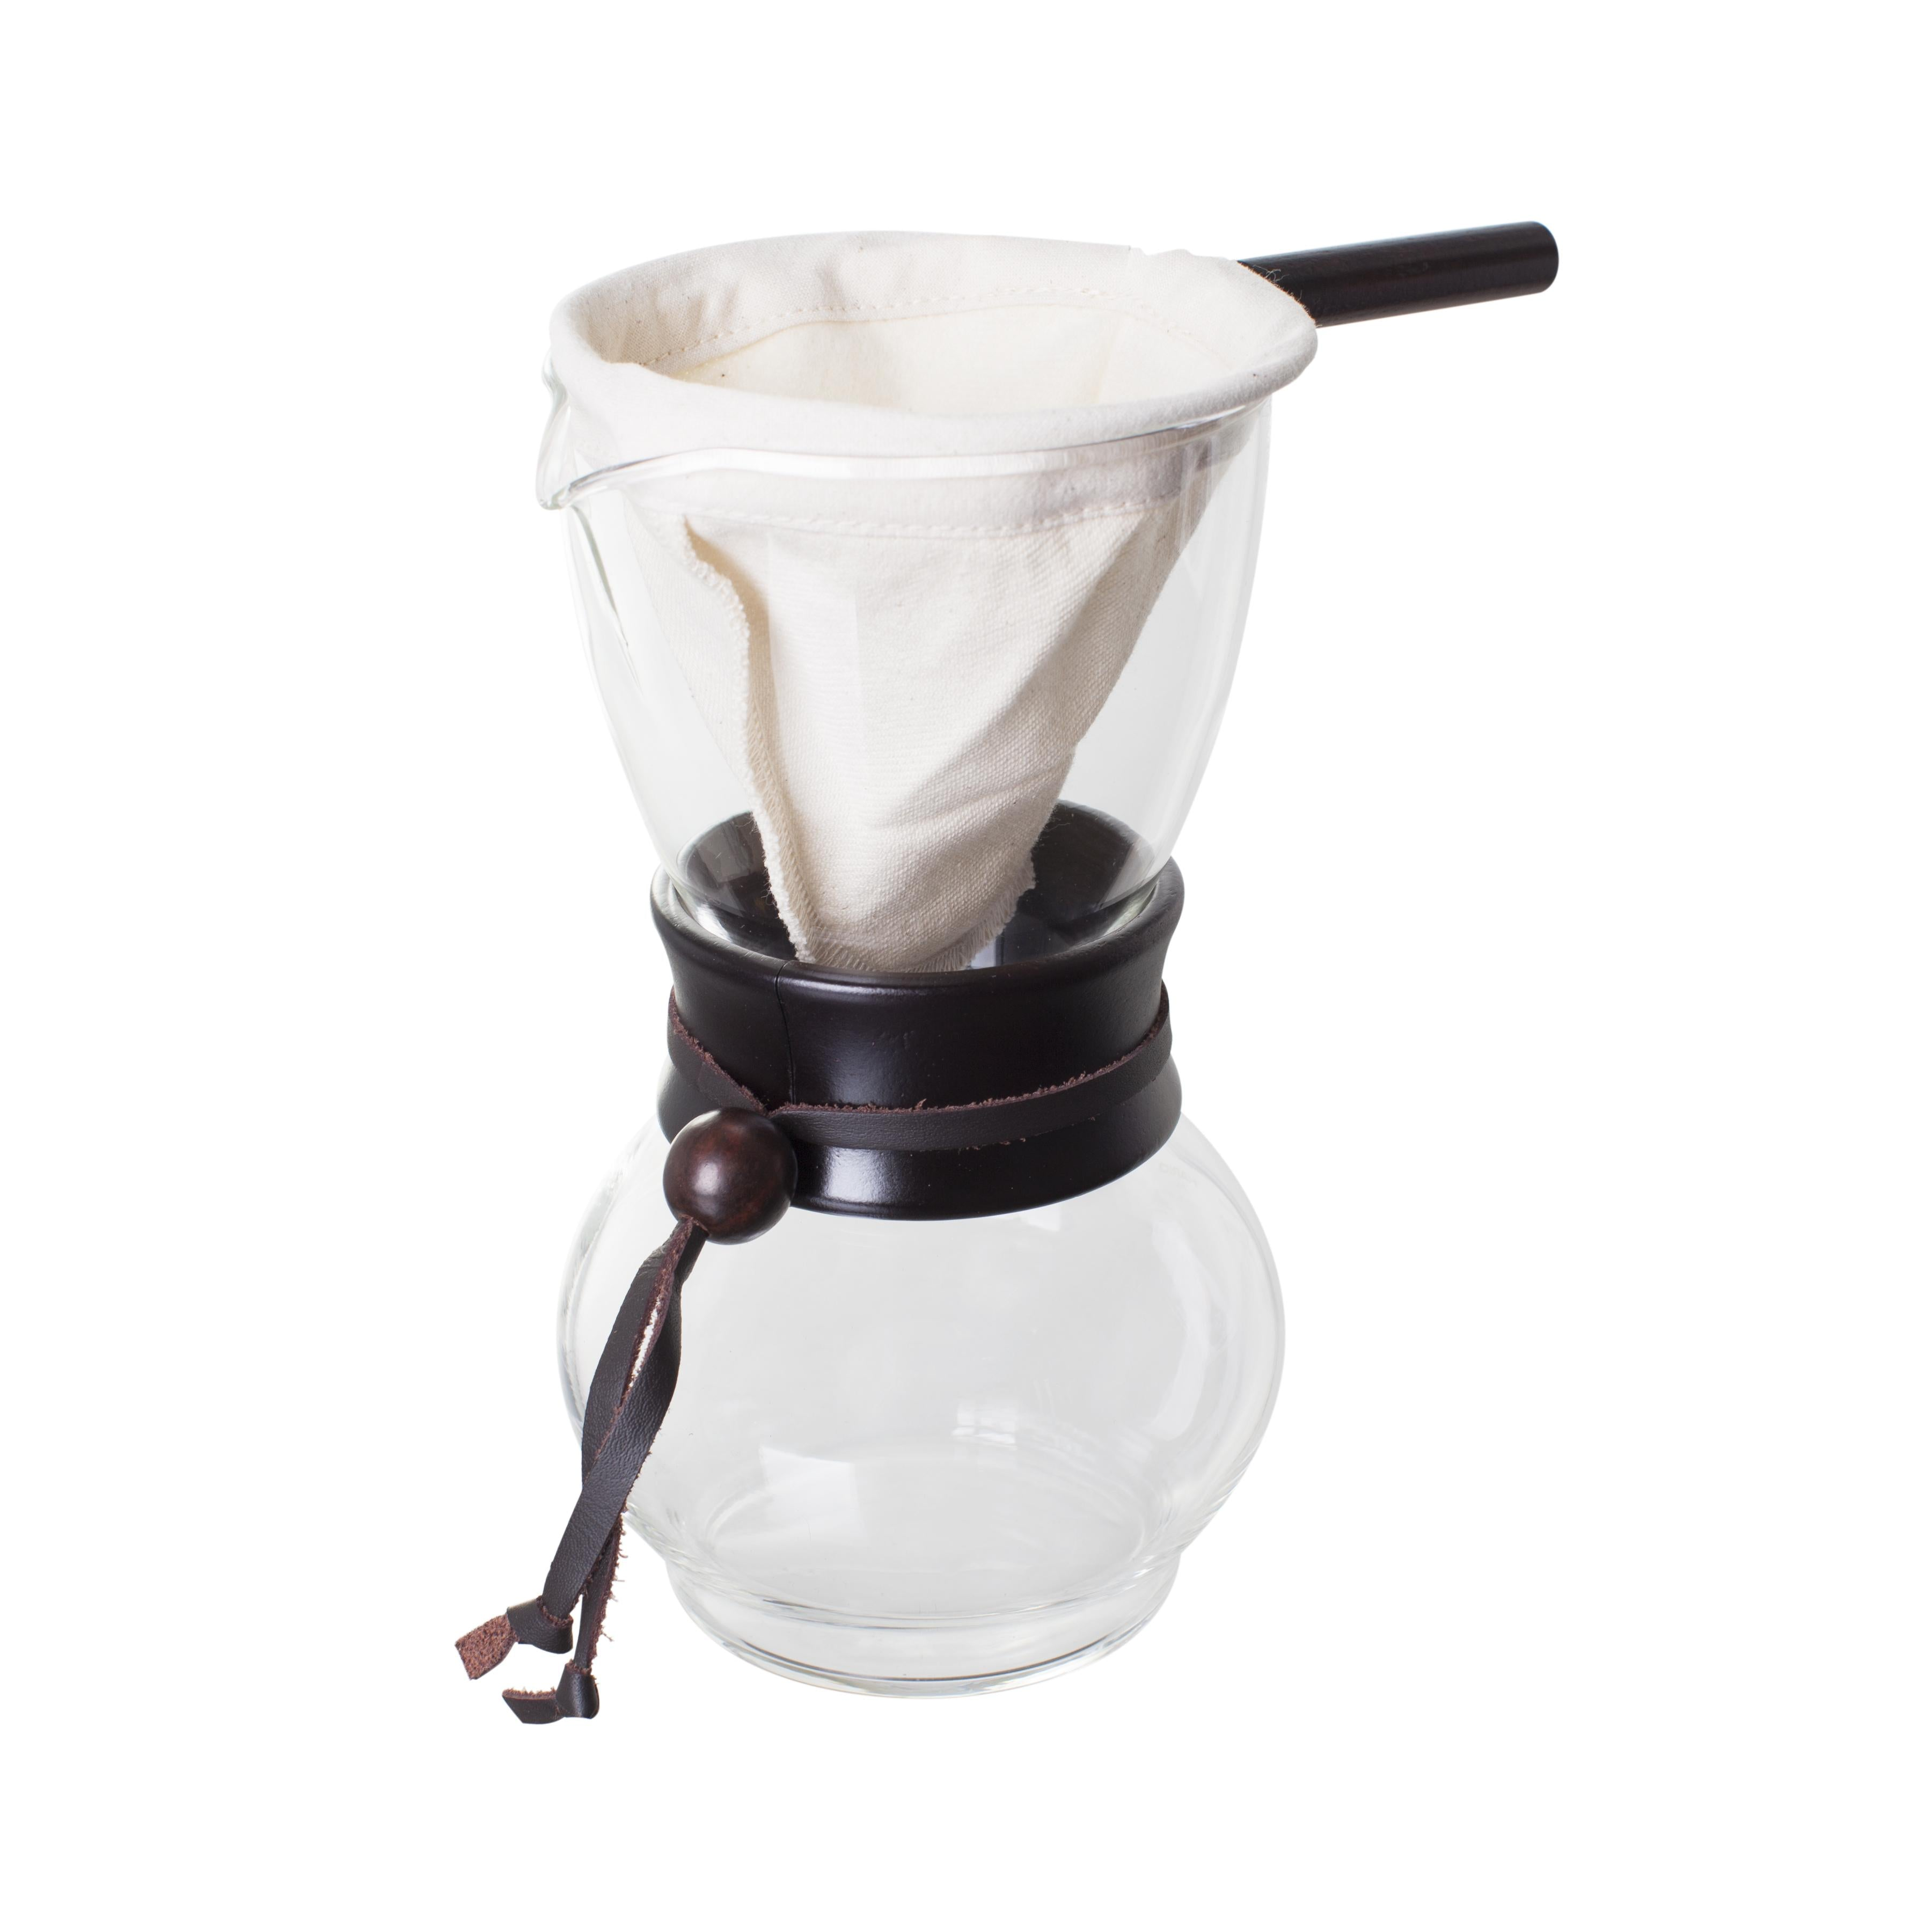 Hario Drip Coffee Pot Pour Over with Woodneck (1-2 Cups)